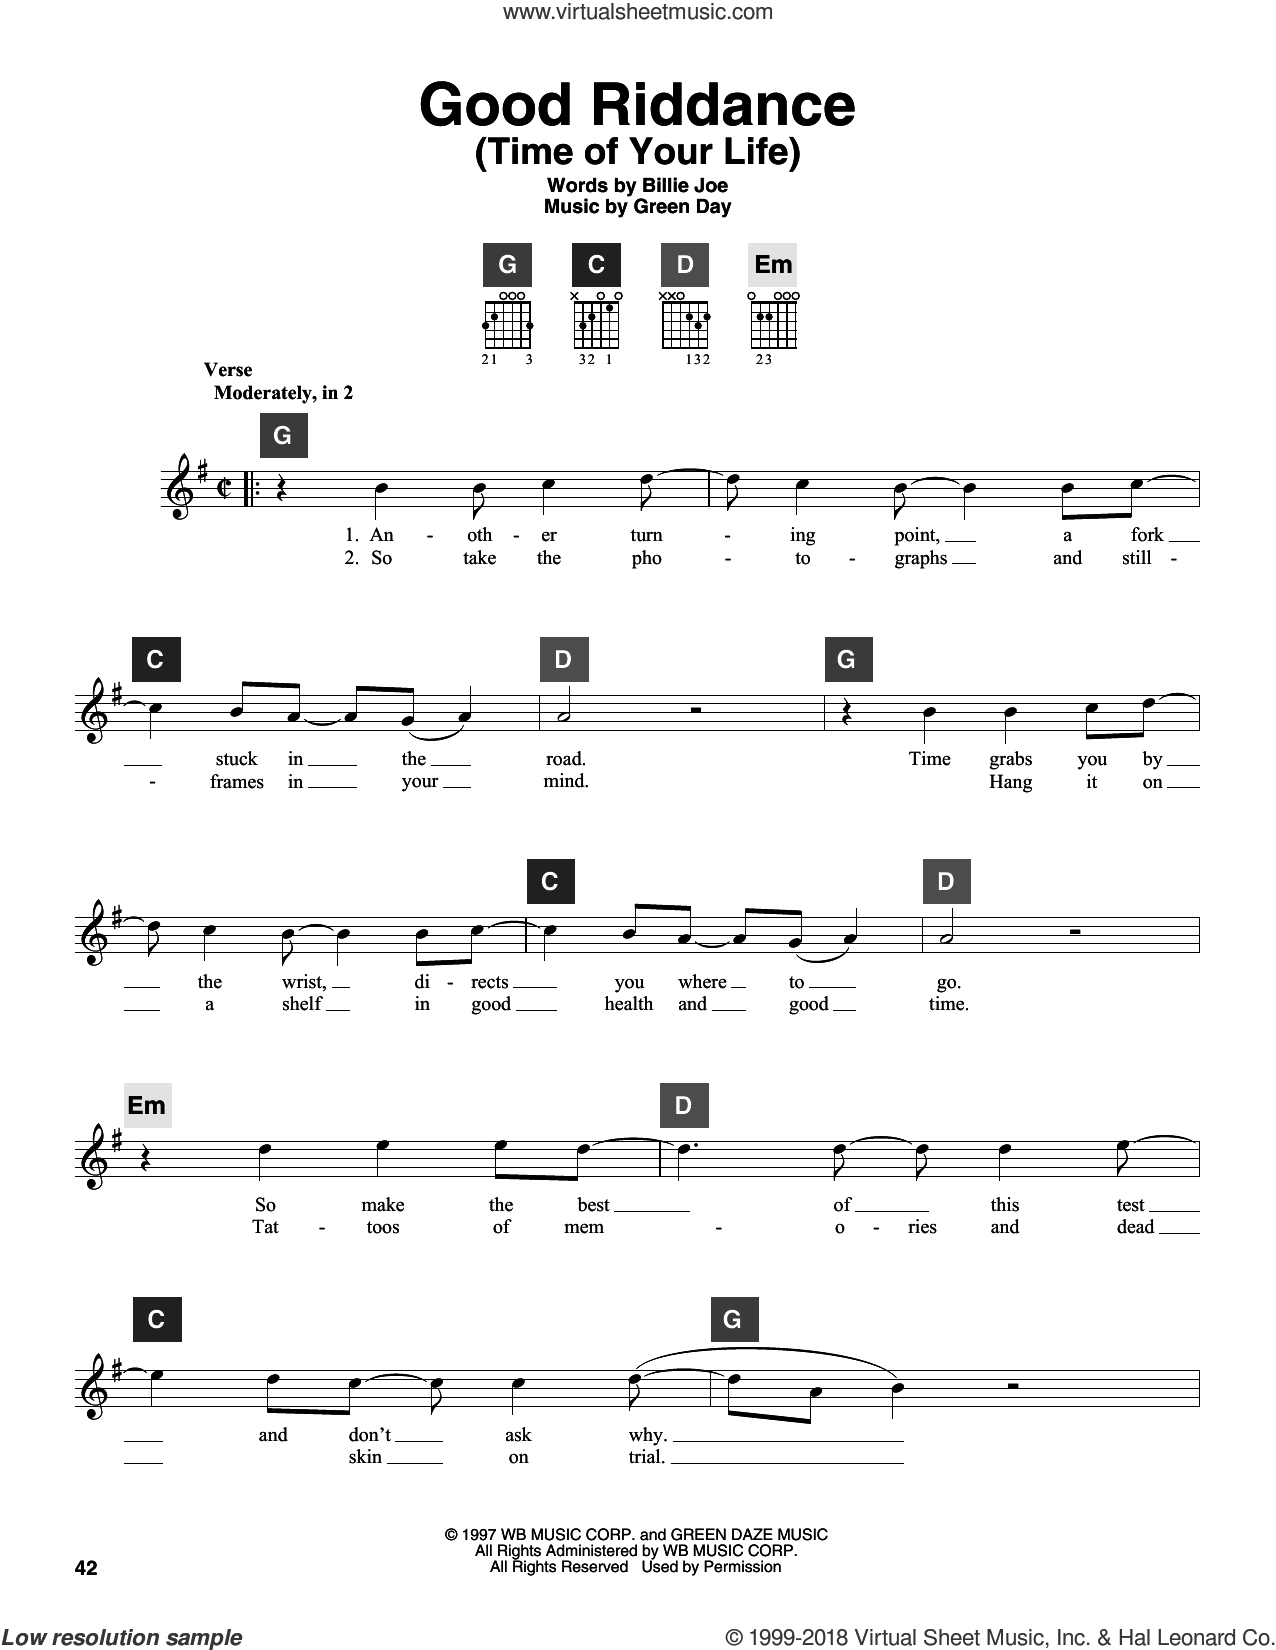 Good Riddance (Time Of Your Life) sheet music for guitar solo (ChordBuddy system) by Green Day and Billie Joe, intermediate guitar (ChordBuddy system)